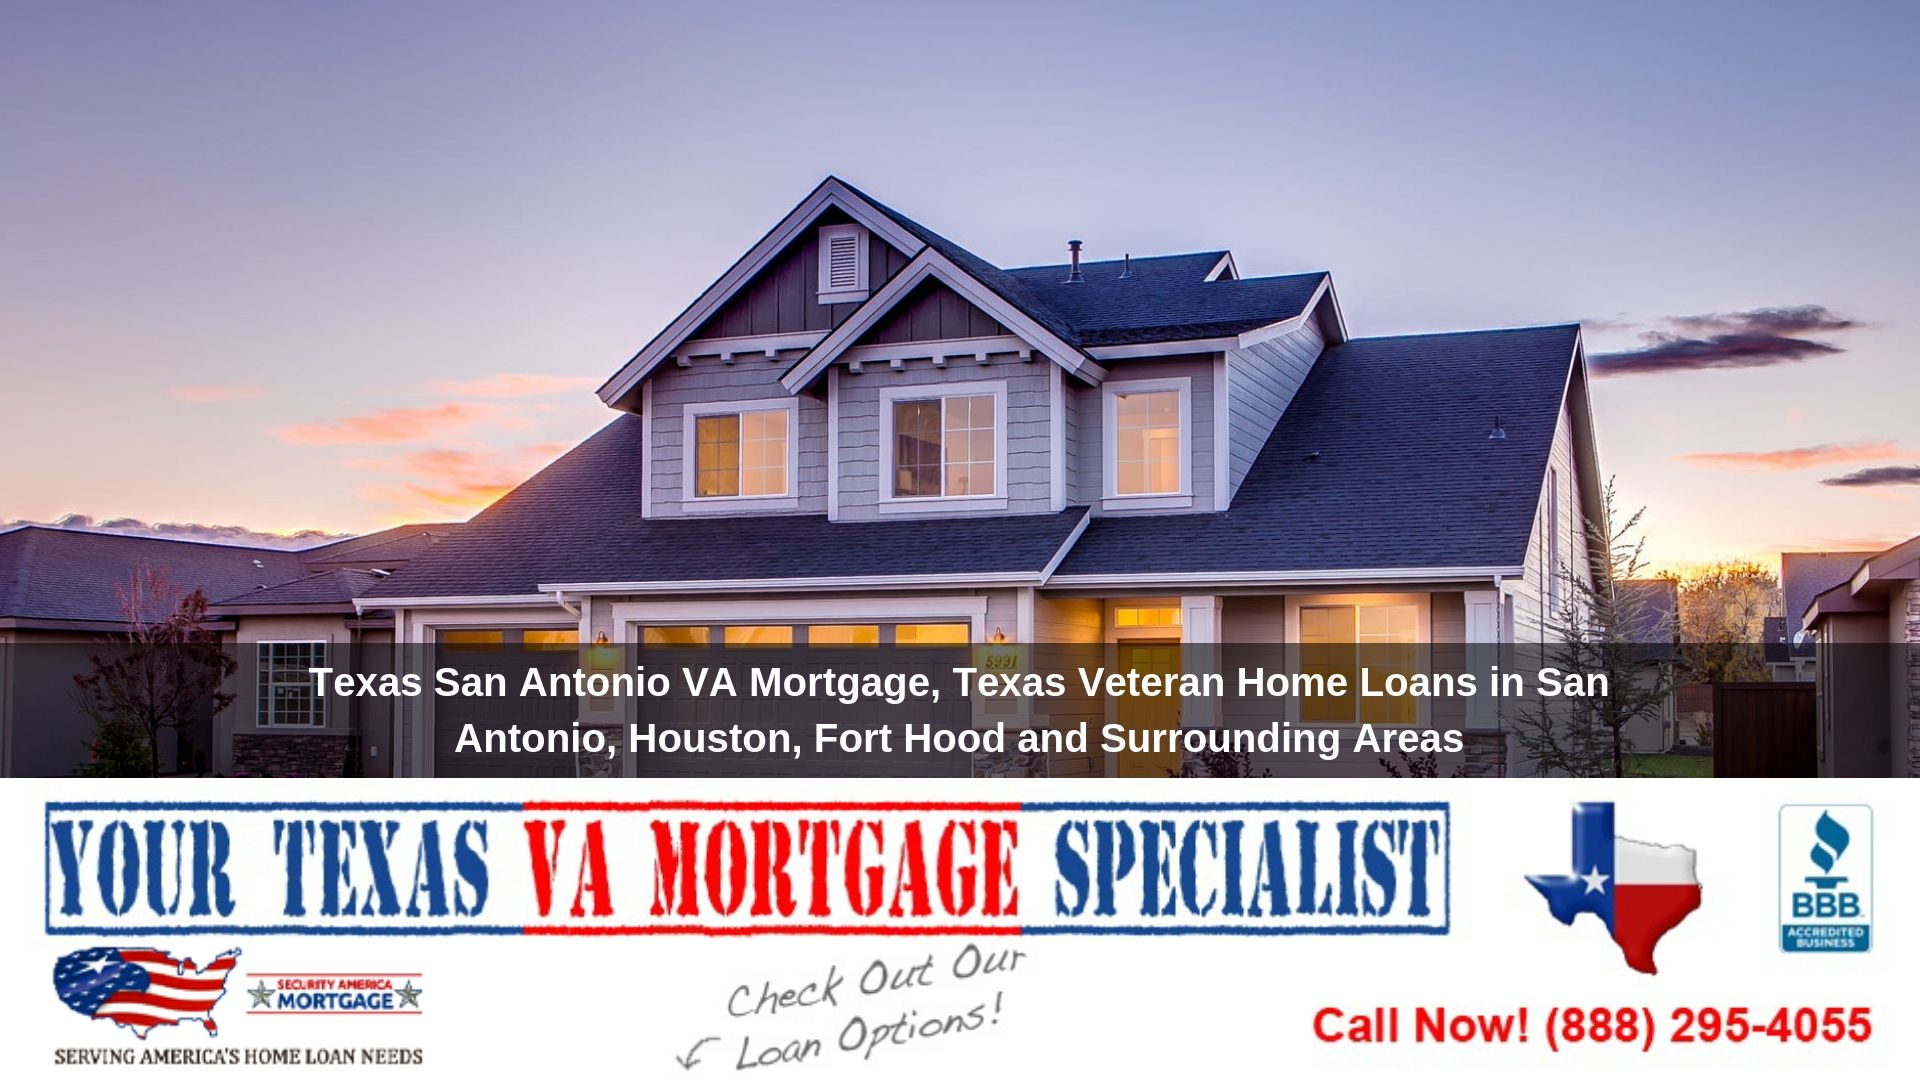 Texasvamortgage As an established and authorized mortgage